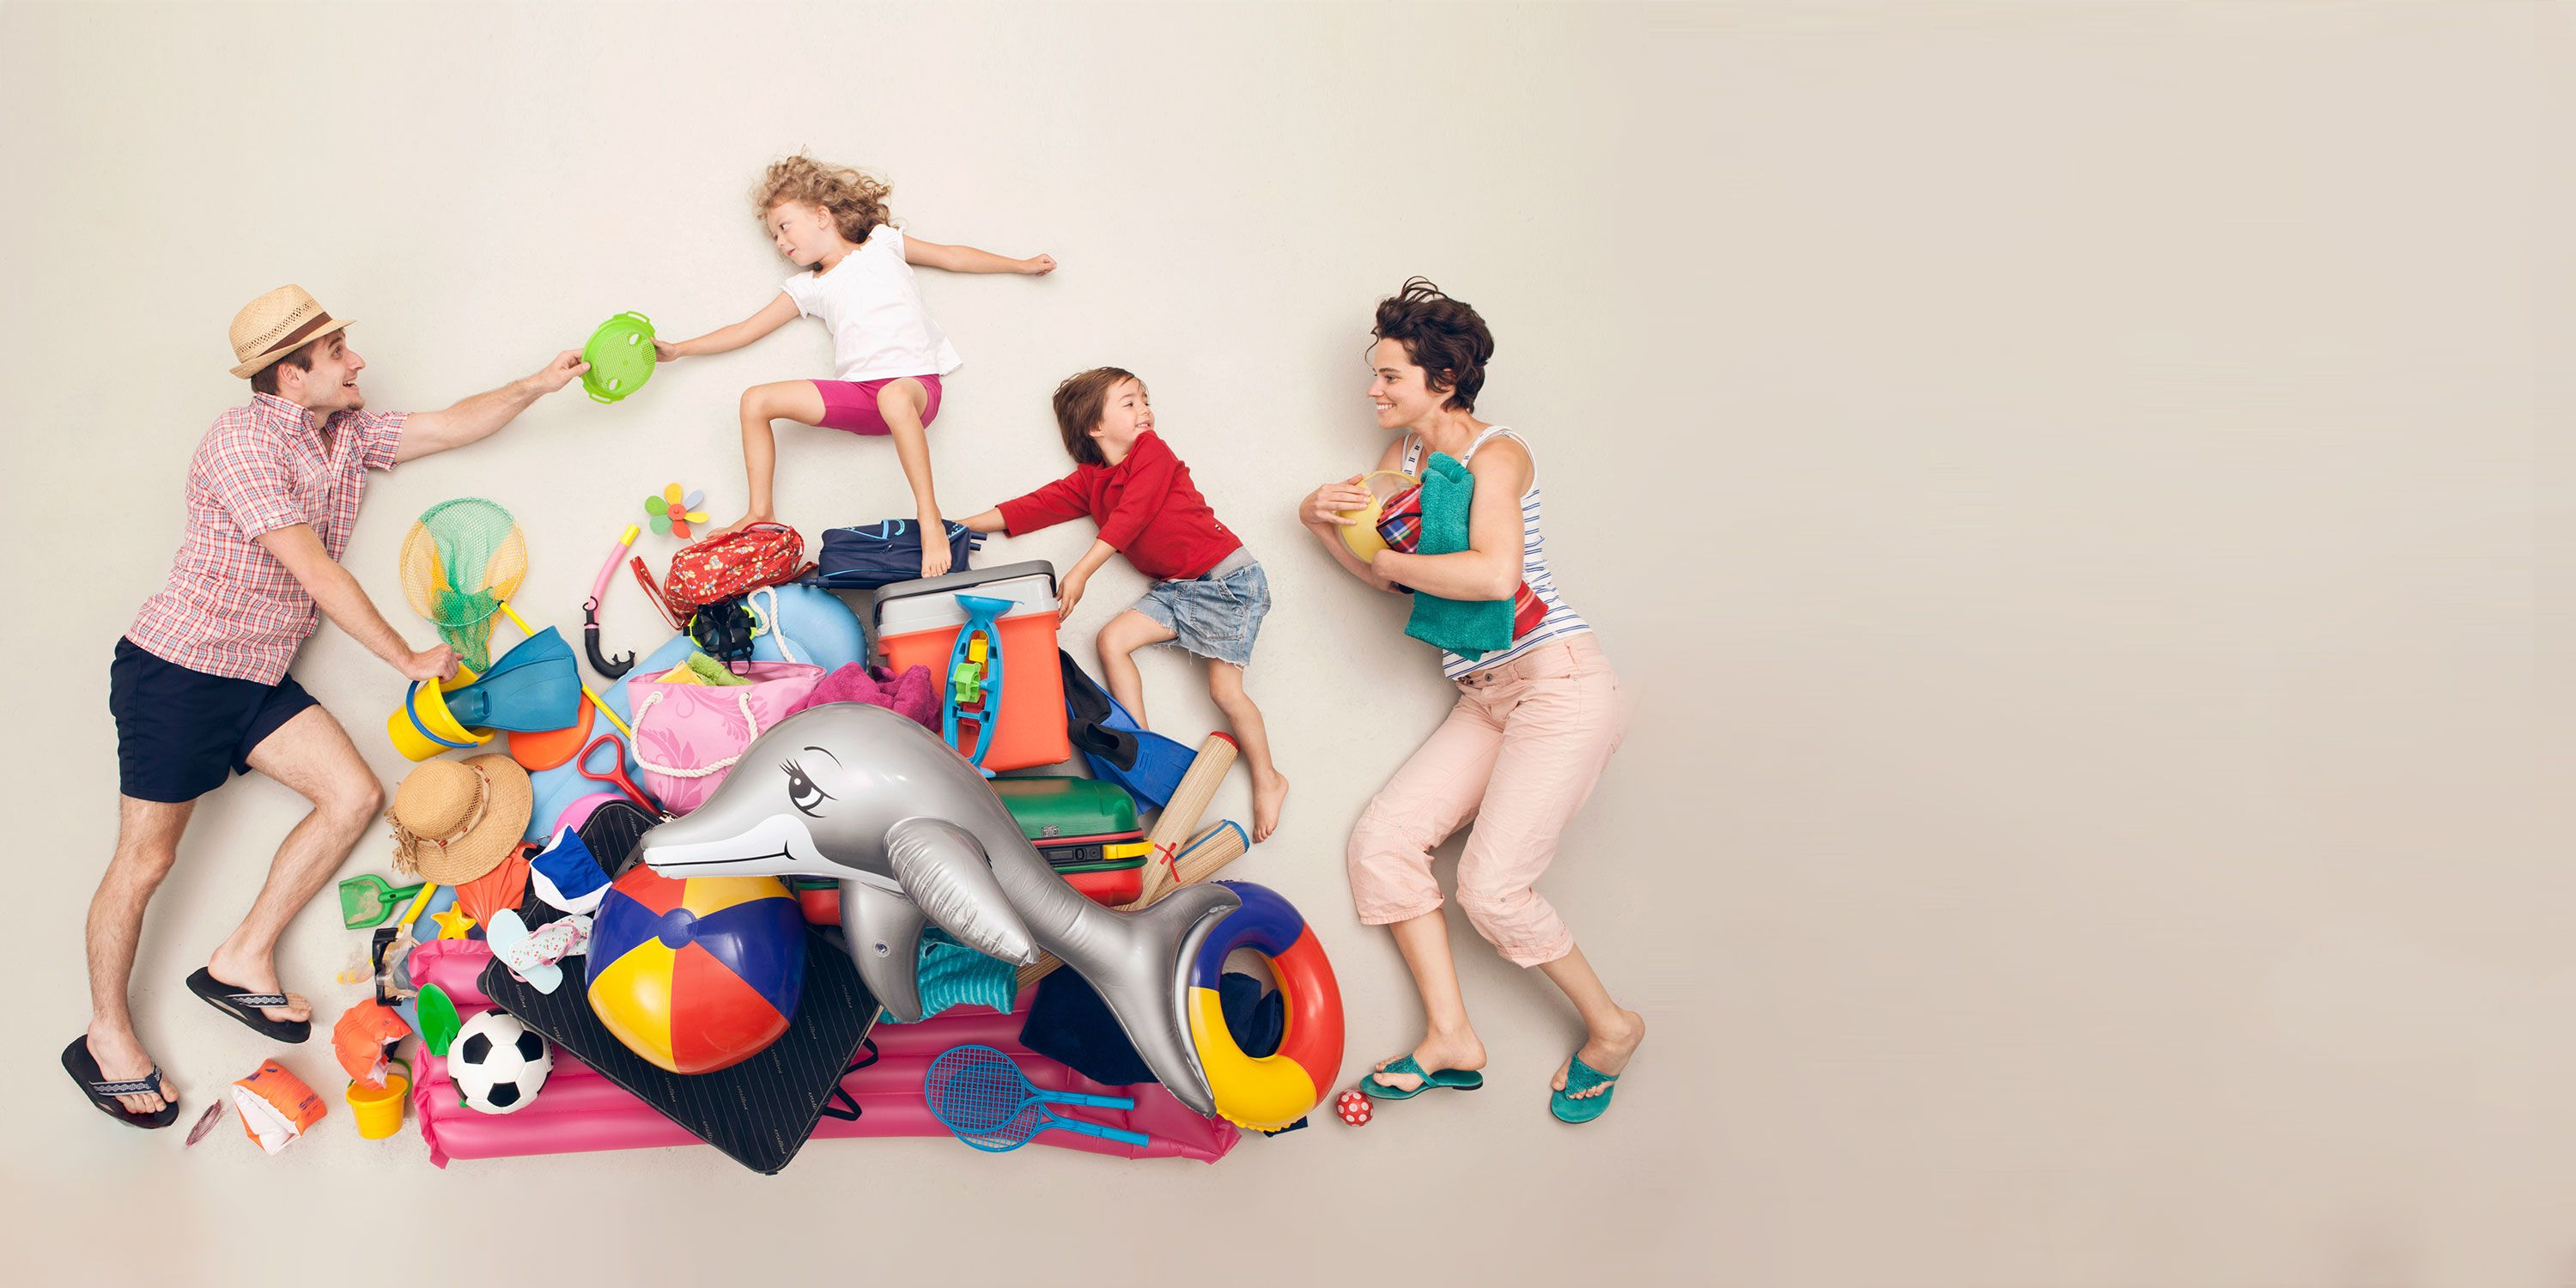 A father in a summer straw hat hands his young daughter a green plastic beach toy. She is on top of a pile of summer beach toys like a blow-up dolphin, a pool raft, shovels, a cooler...etc. Climbing on the pile is a younger boy wearing a red colored rash